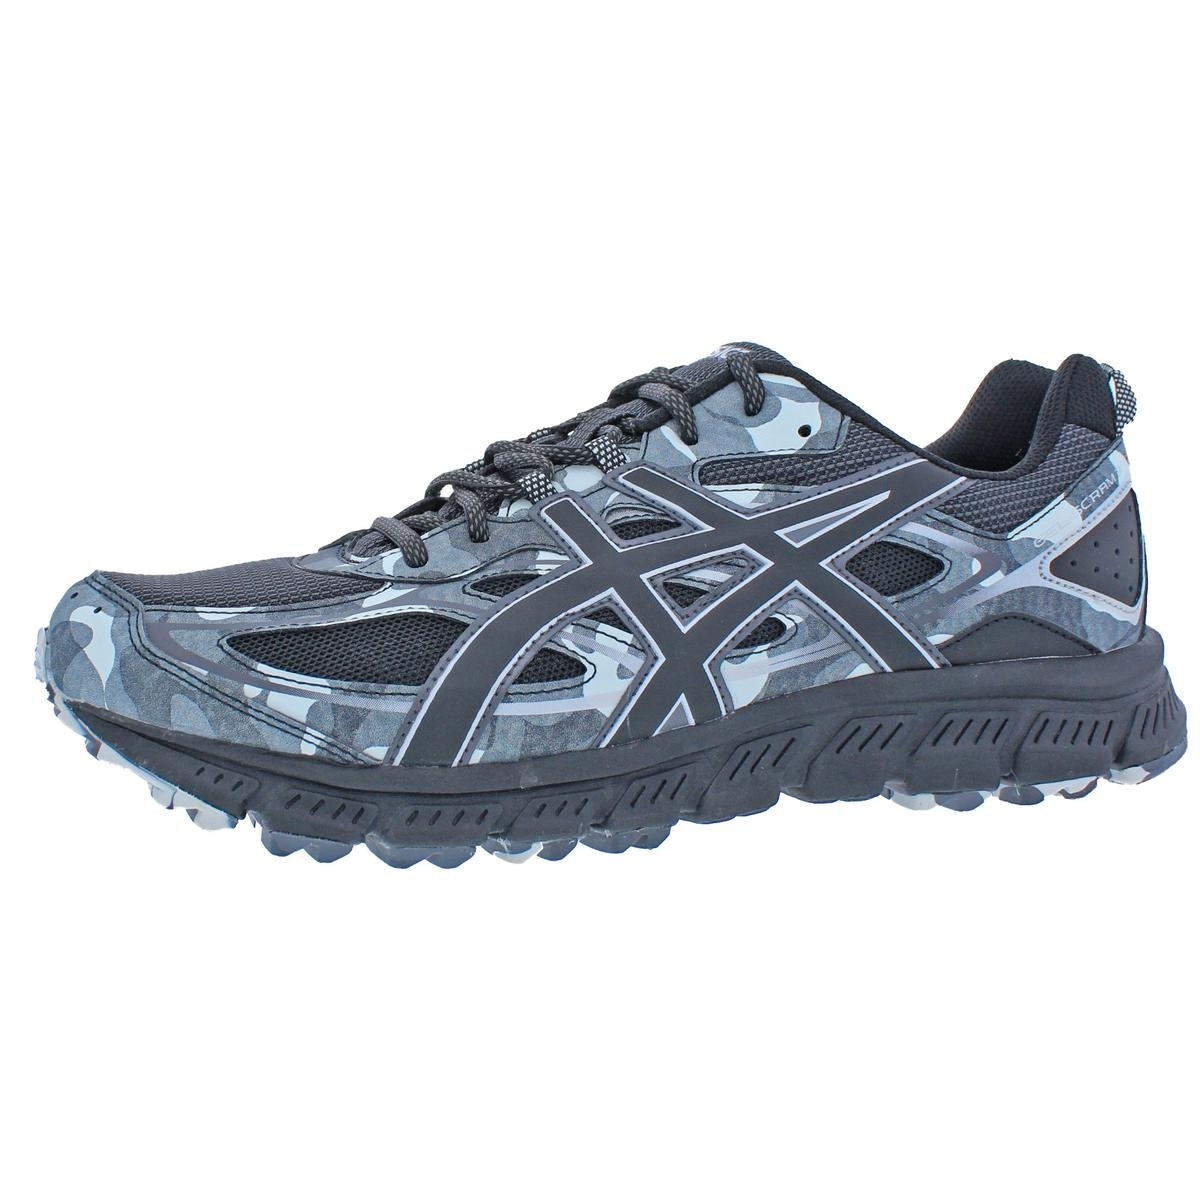 7d1e50f4ebab Shop Asics Mens GEL-Scram 3 Trail Running Shoes Camouflage Trainer - Free  Shipping Today - Overstock - 22680262